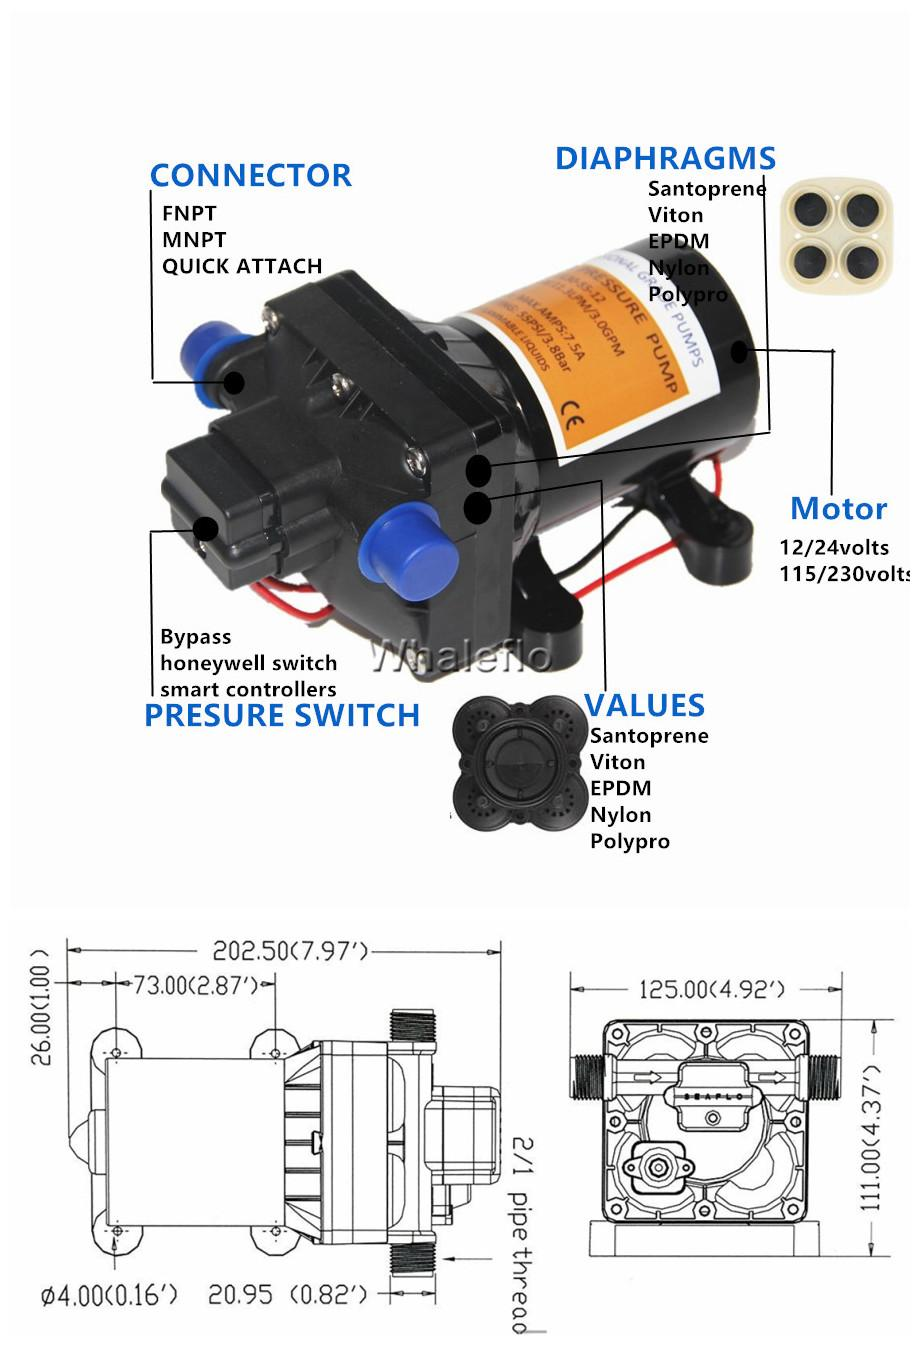 55psi 12V DC pump